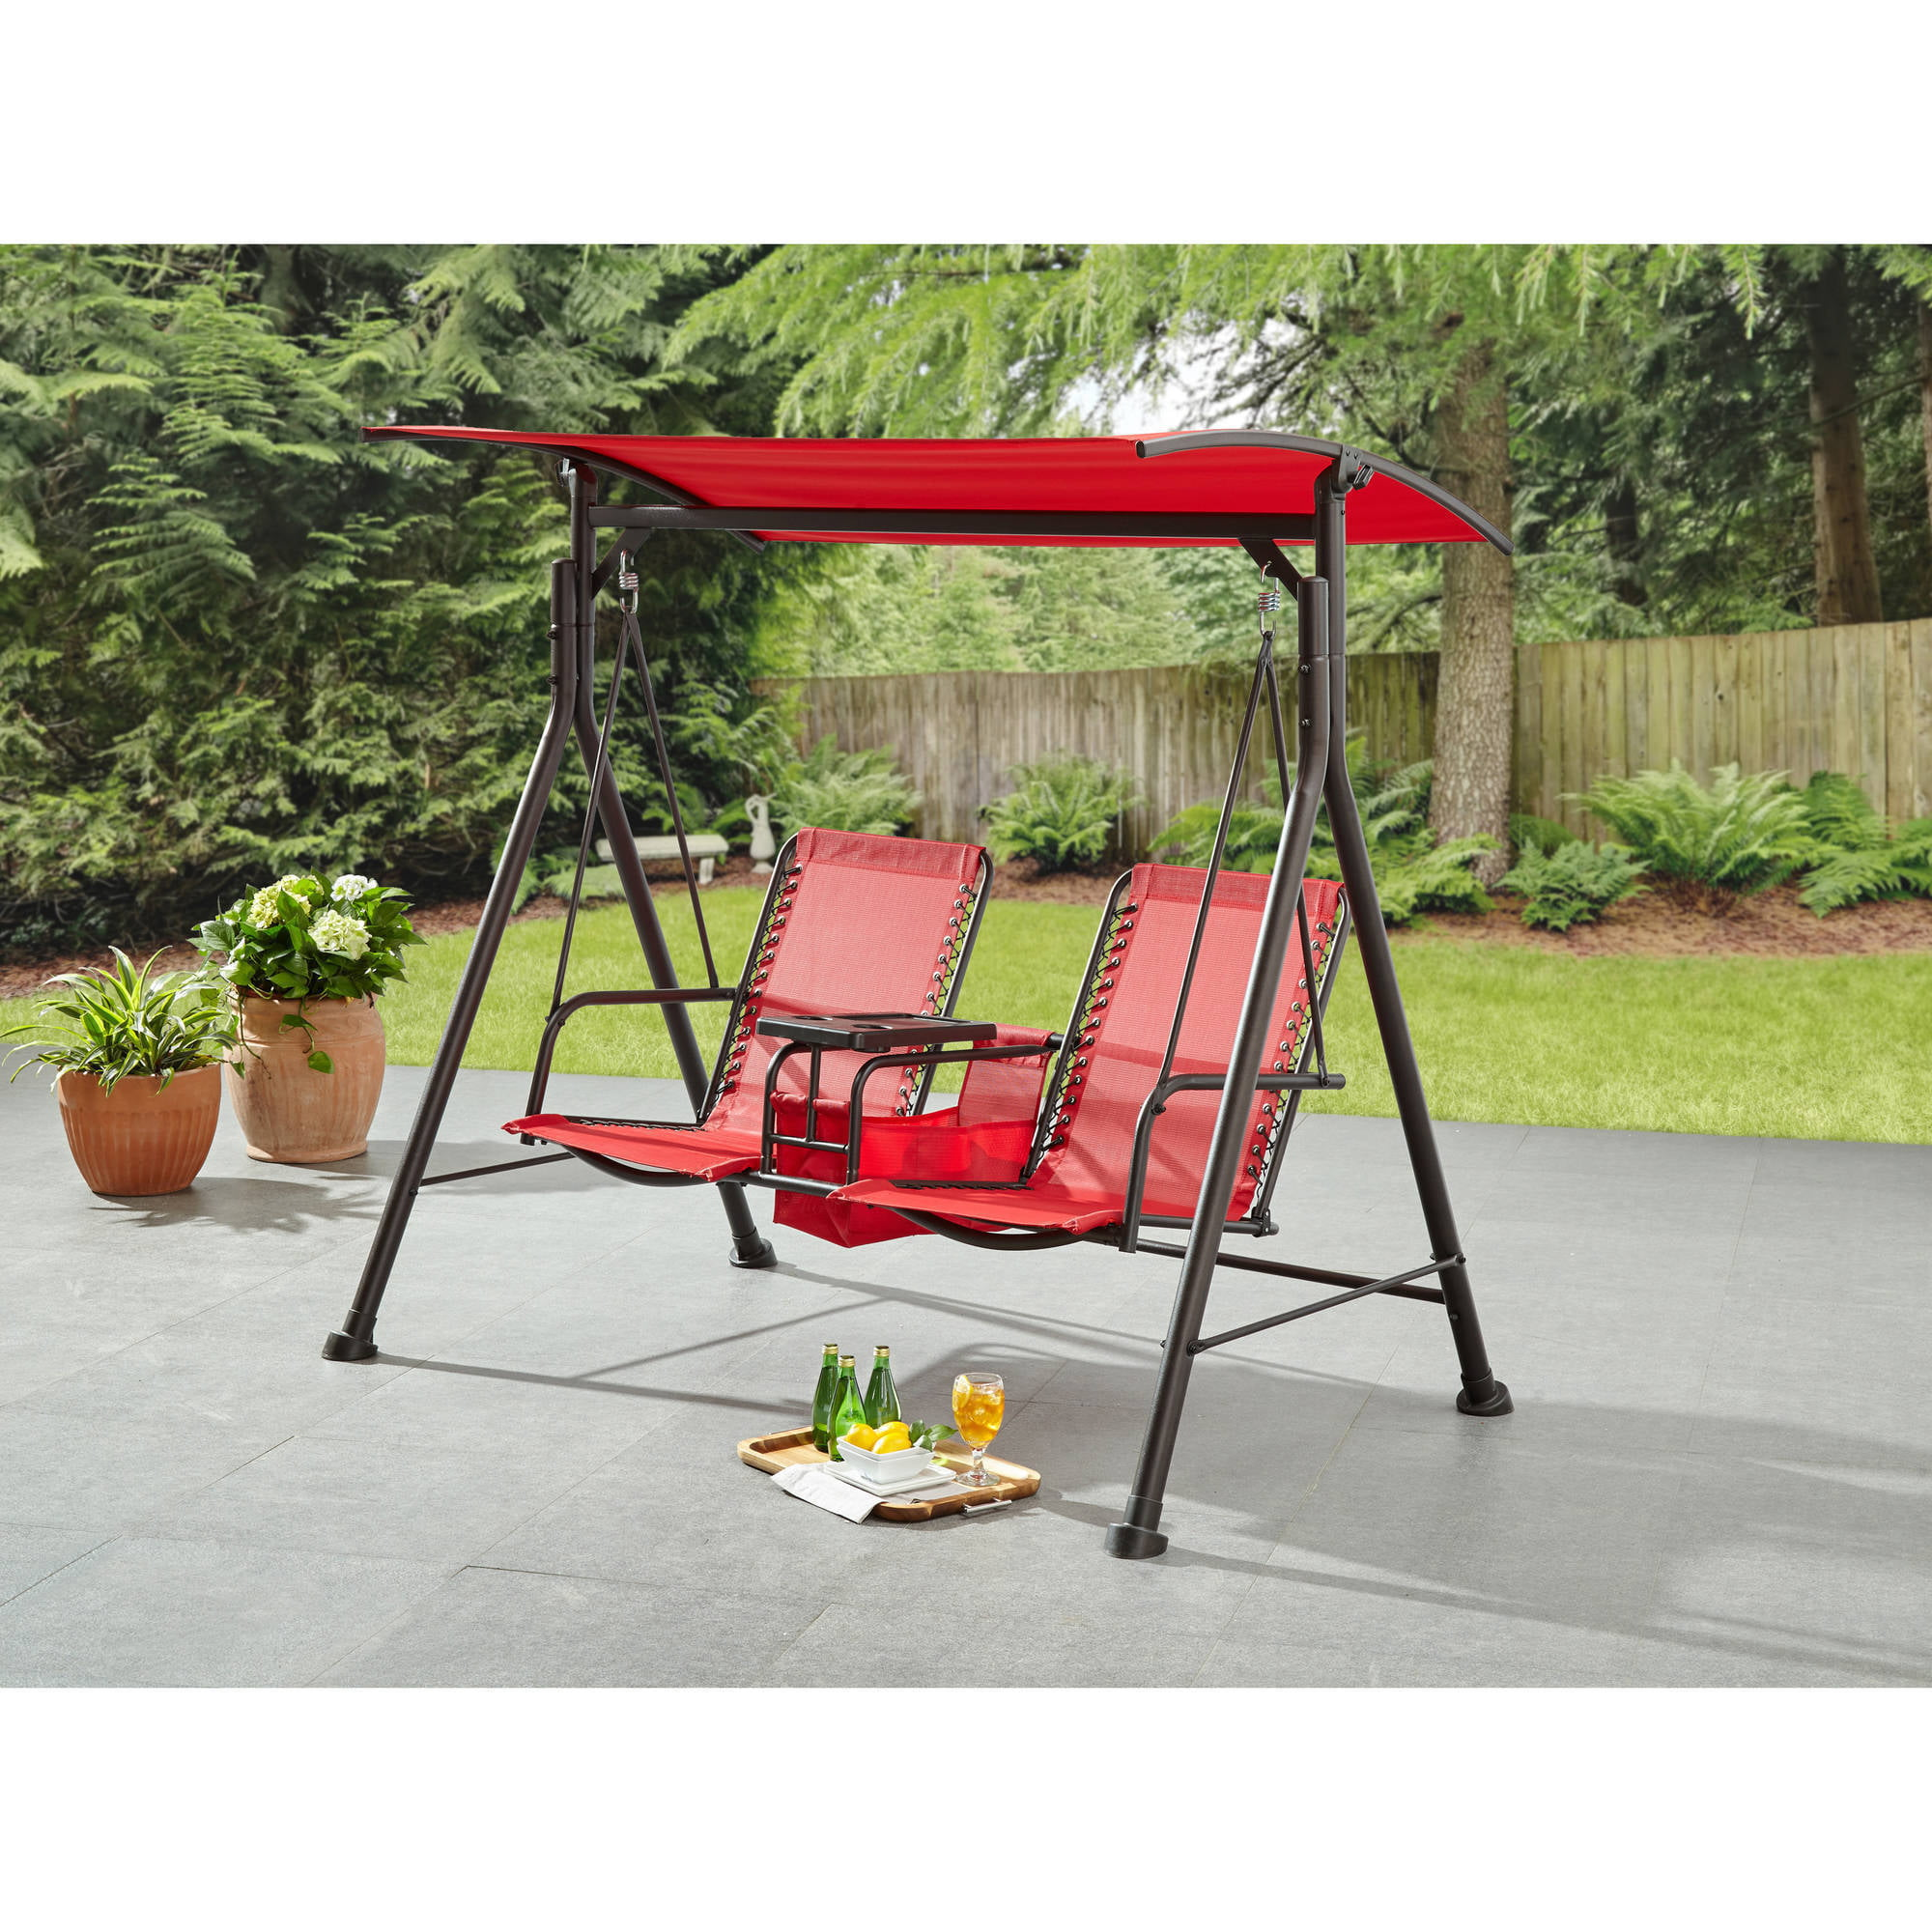 Ozark Trail Big and Tall 2-Person Bungee Canopy Porch Swing by Courtyard Creations Inc